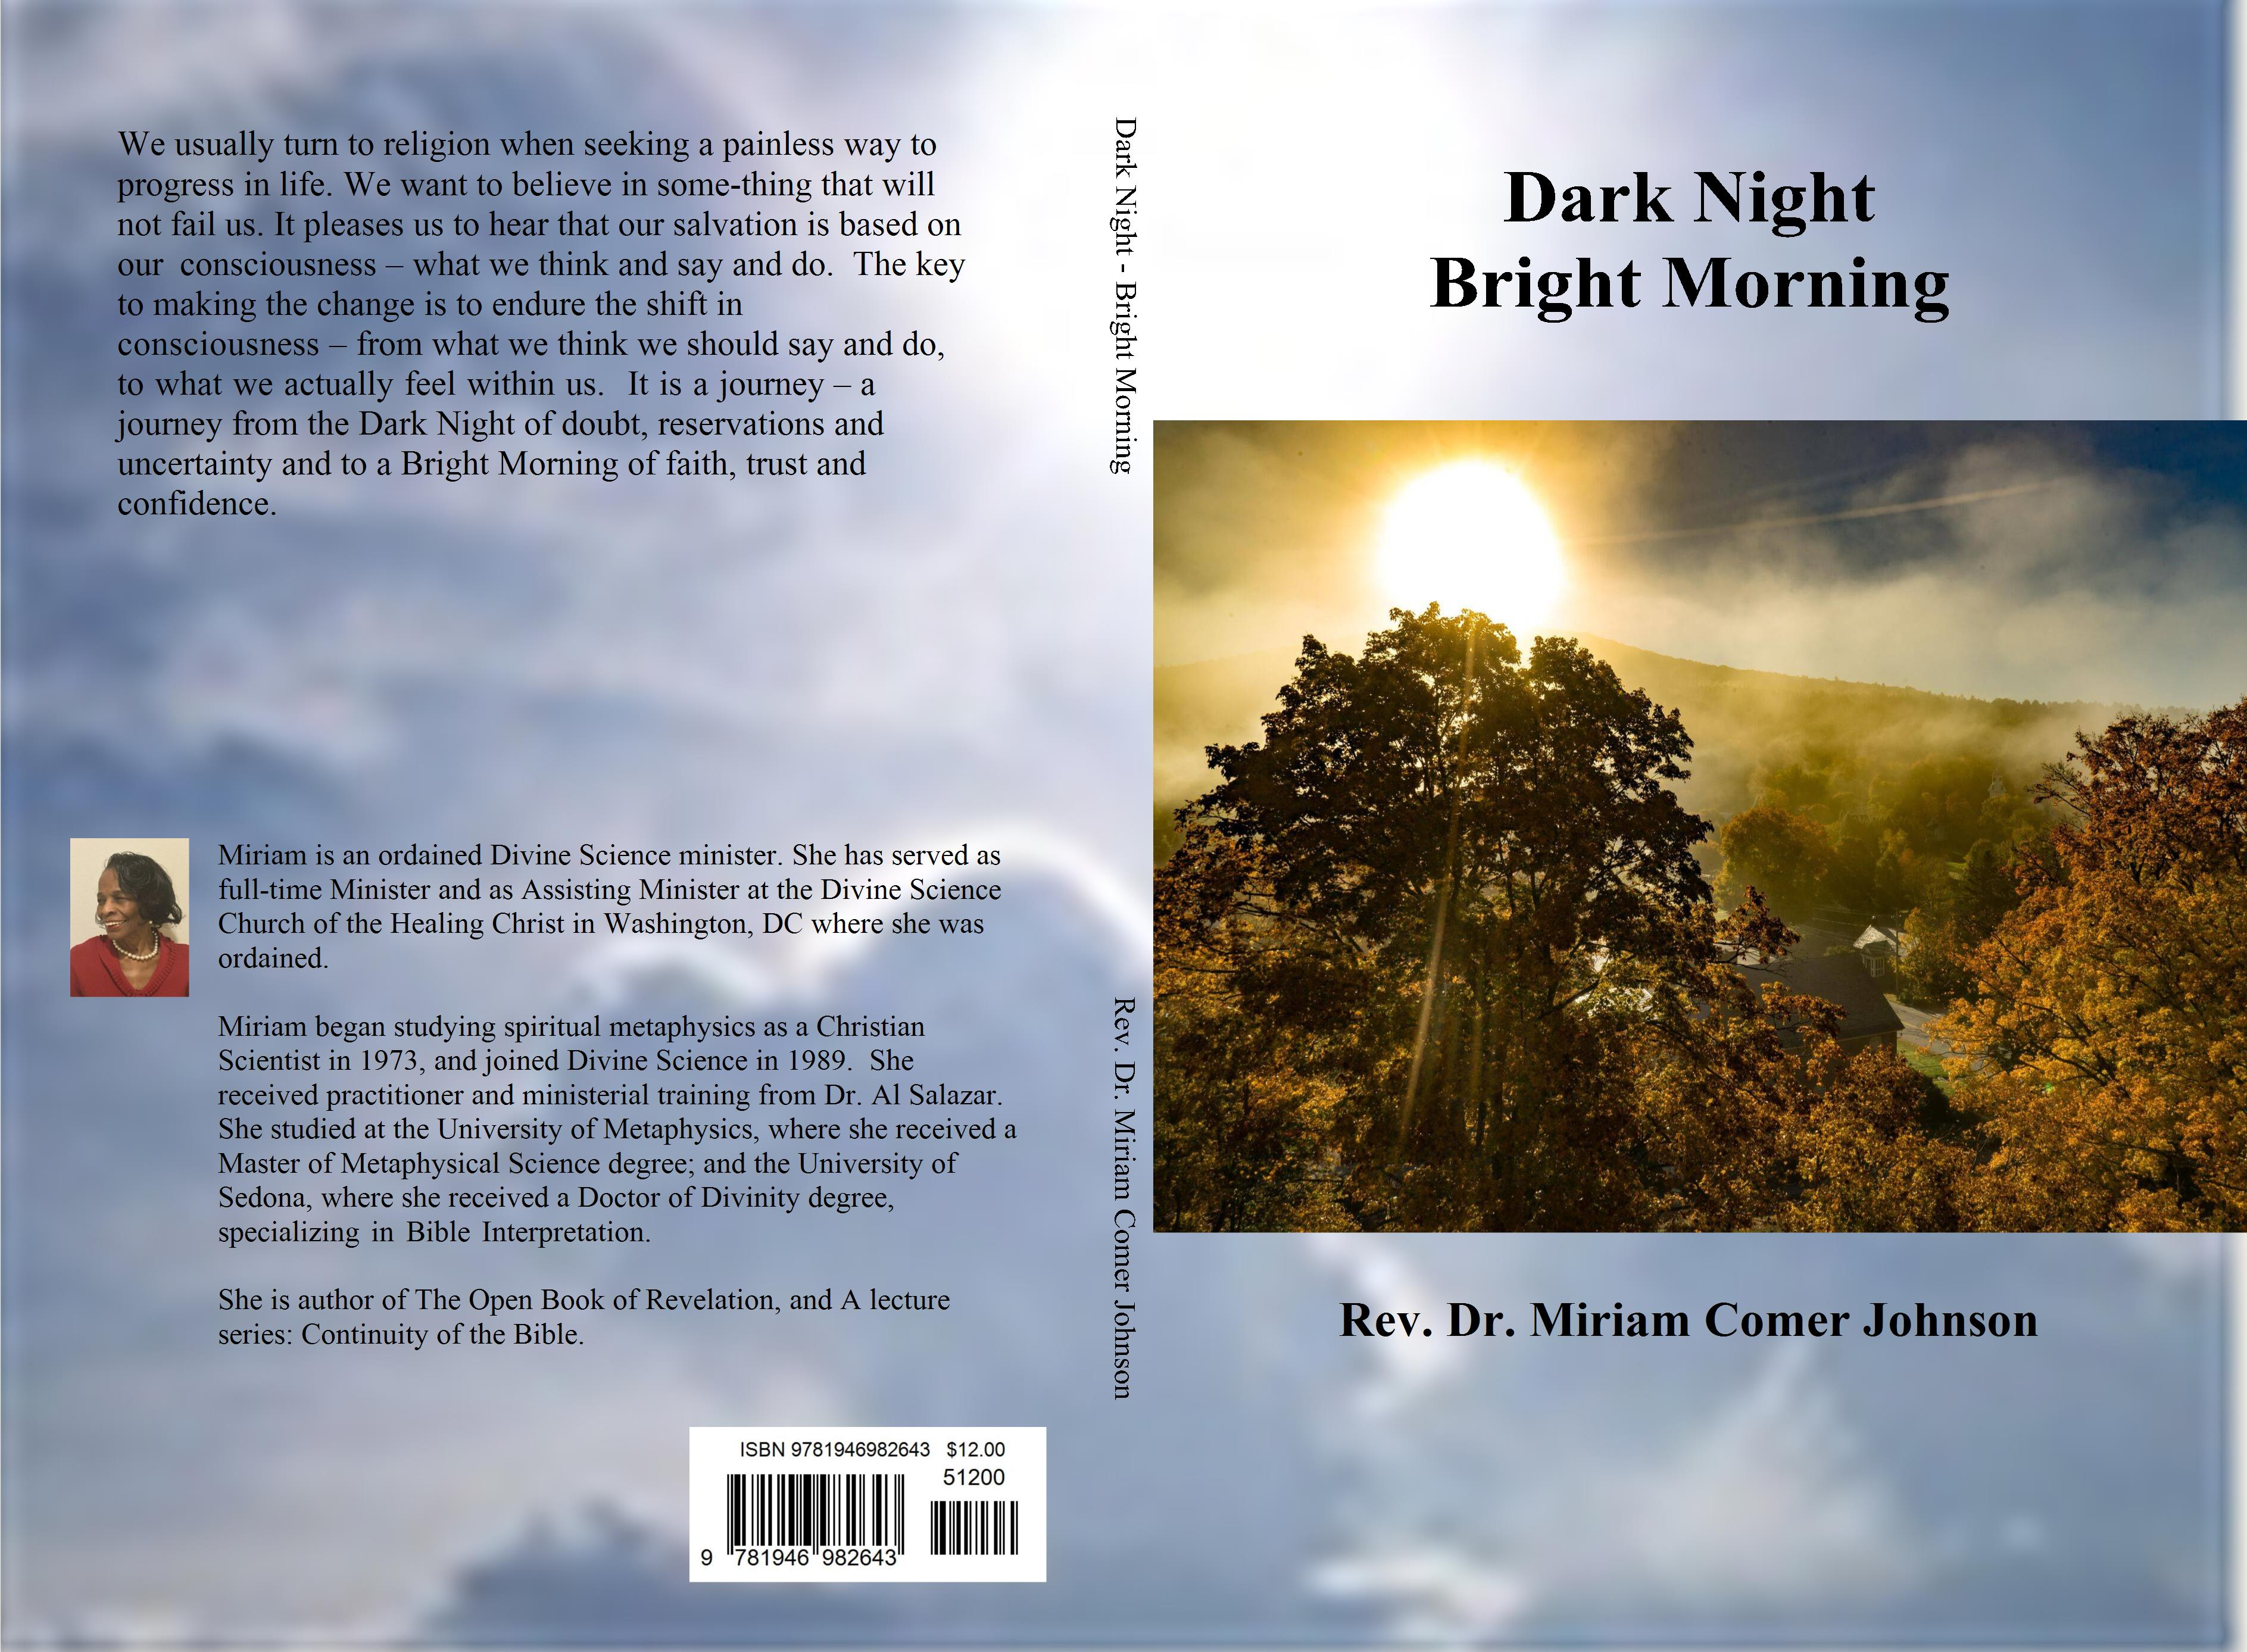 Dark Night Bright Morning cover image